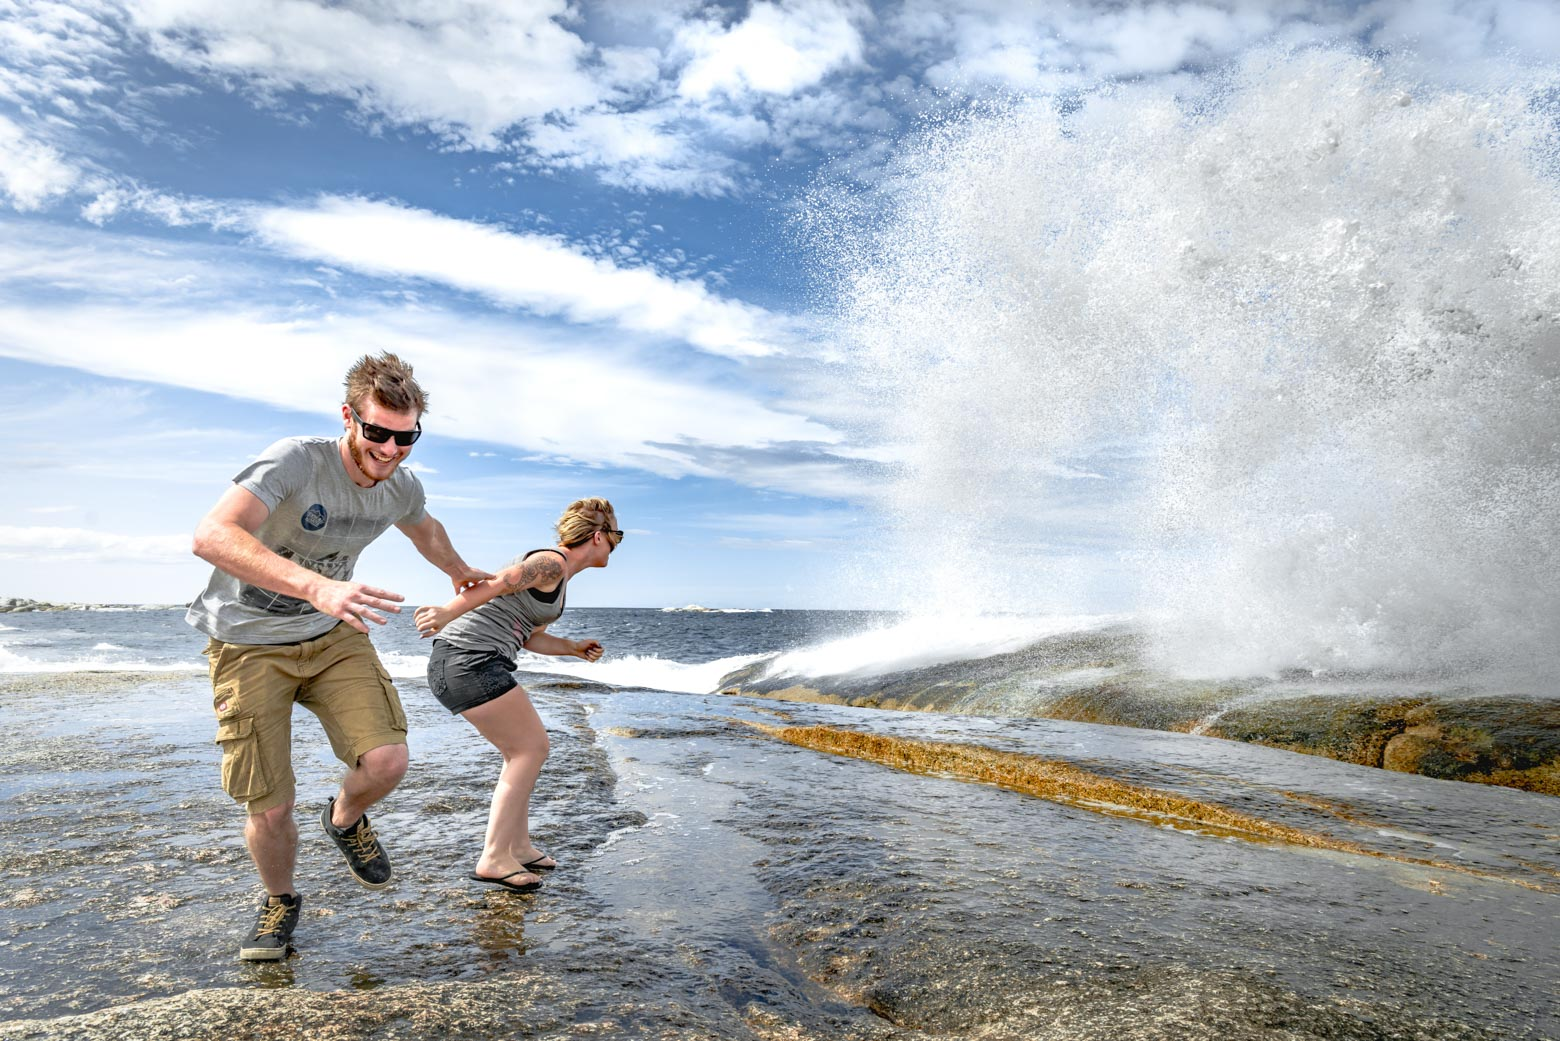 See the exciting Bicheno Blowhole on your Lap of Tasmania road trip